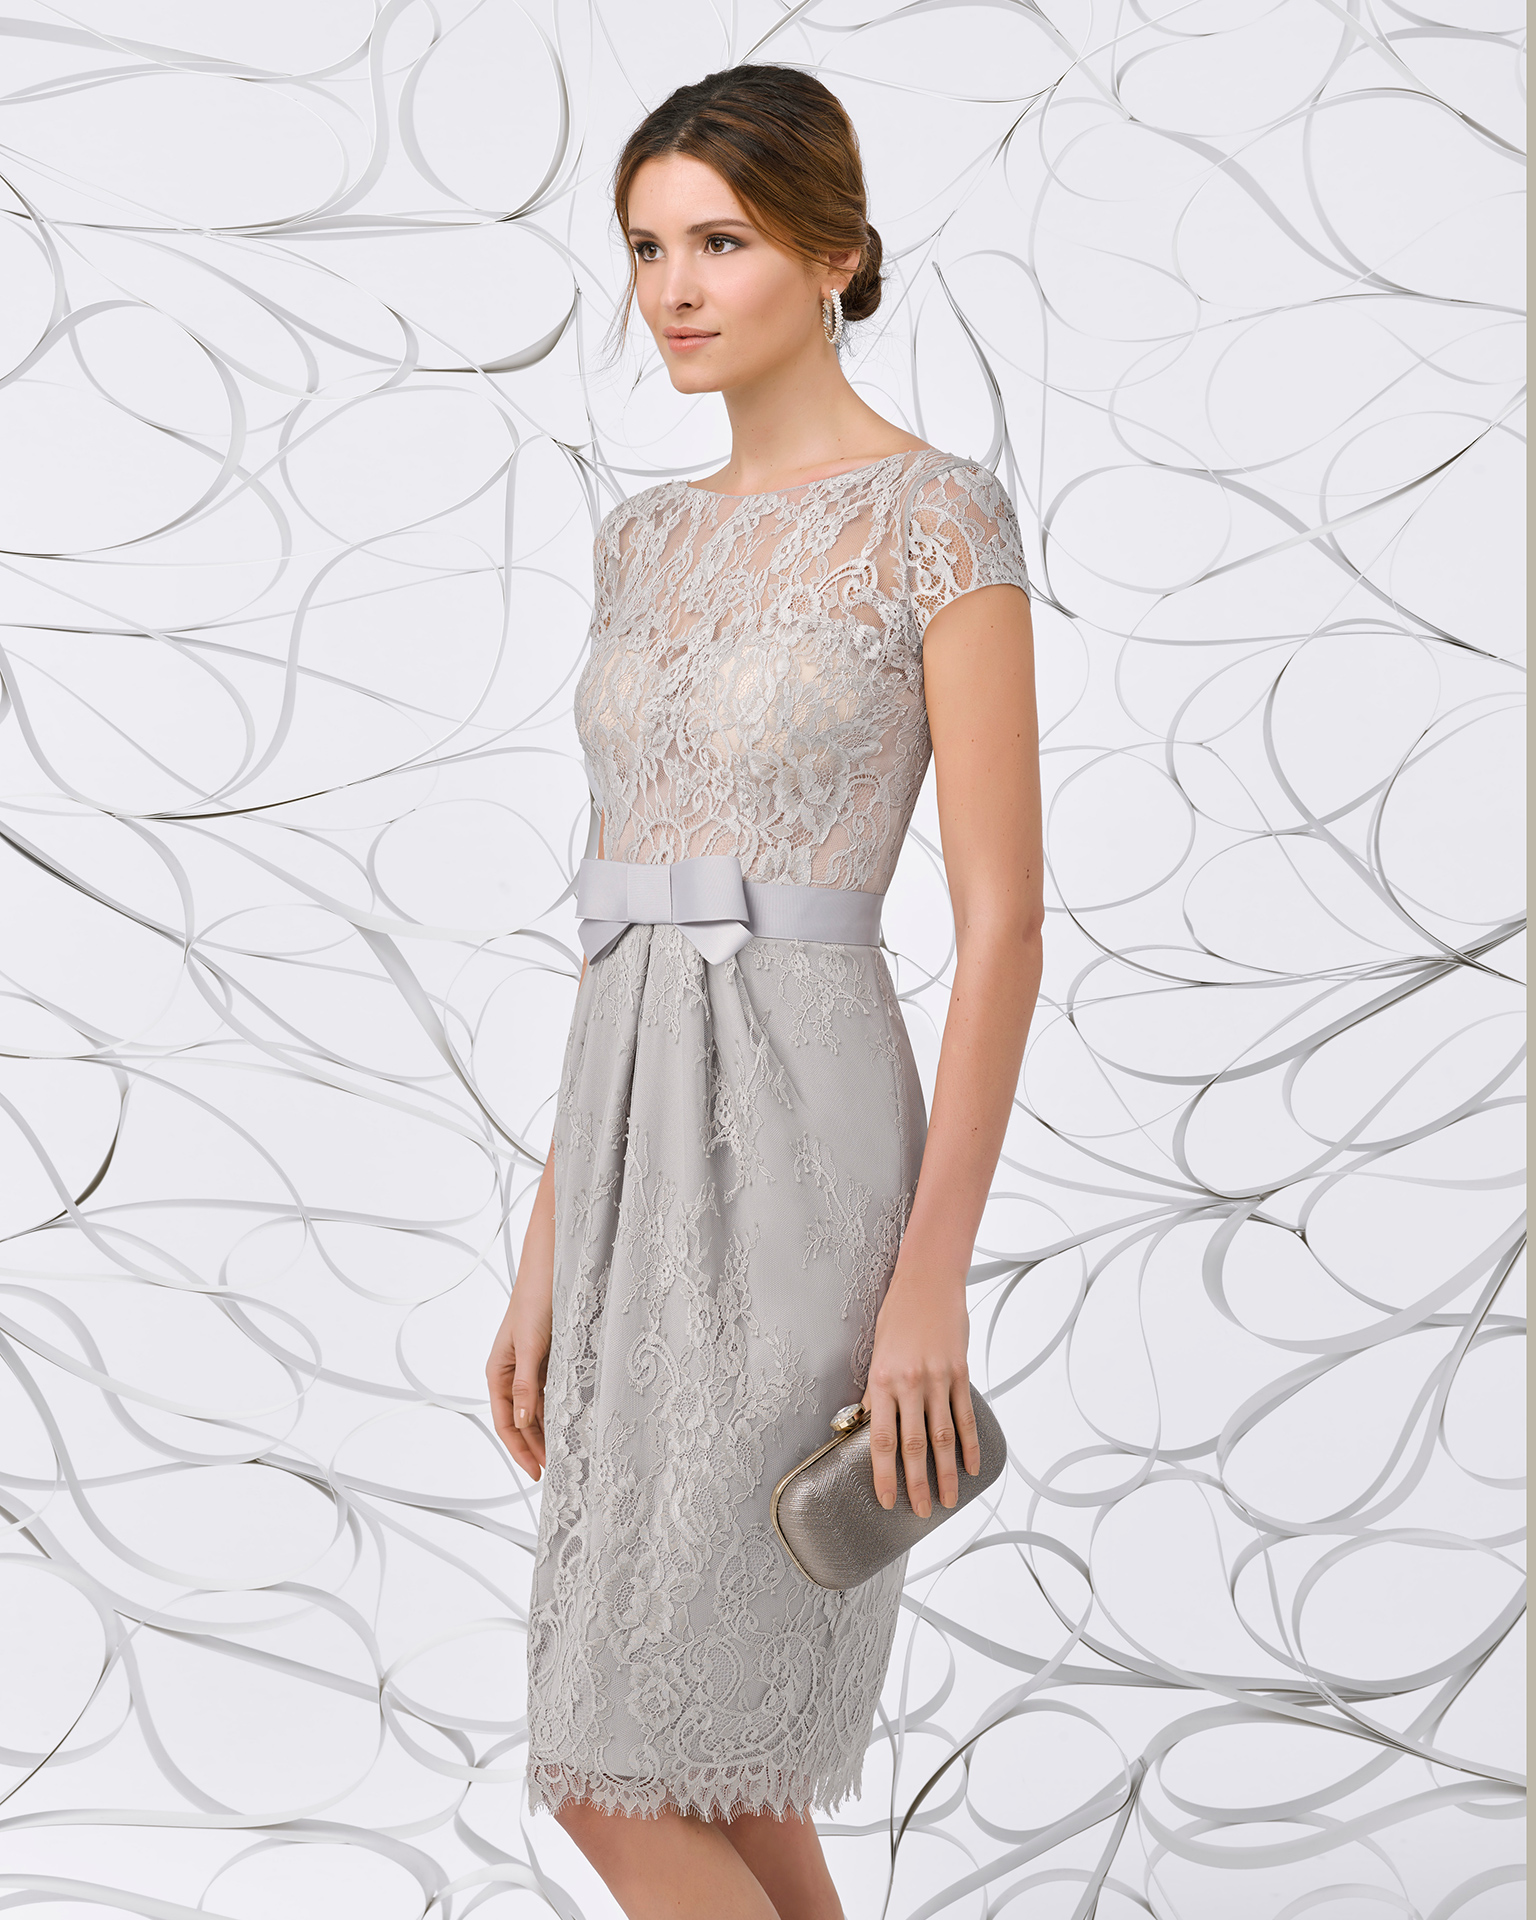 Short lace cocktail dress with jacket, V-back, short sleeves and bow on waist. Available in navy blue/nude, silver, silver/nude and coral. 2018 FIESTA AIRE BARCELONA Collection.